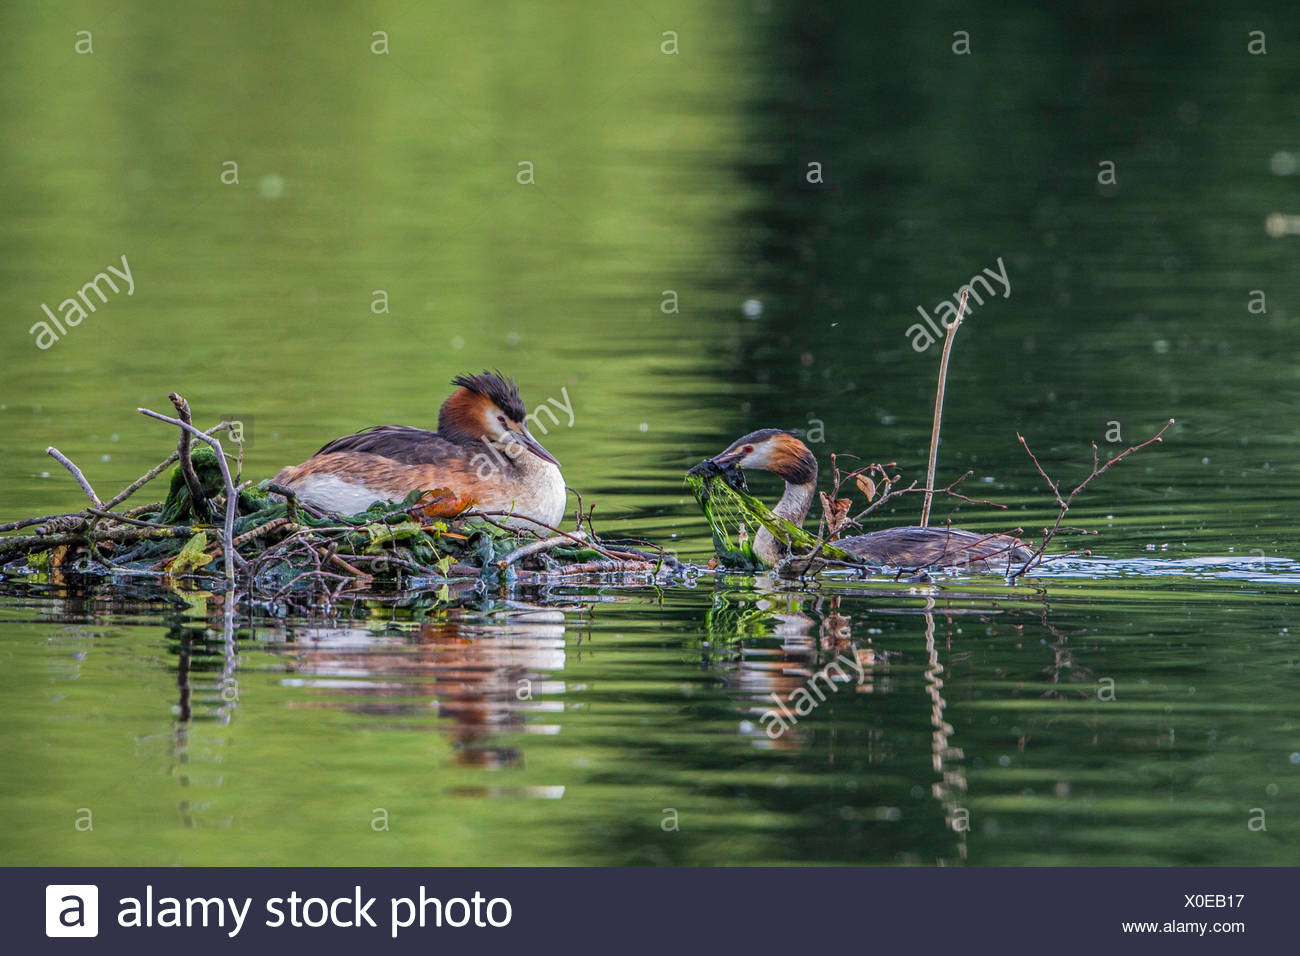 great crested grebe (Podiceps cristatus), bringing nesting material to the nest with breeding mate, Germany, Bavaria - Stock Image